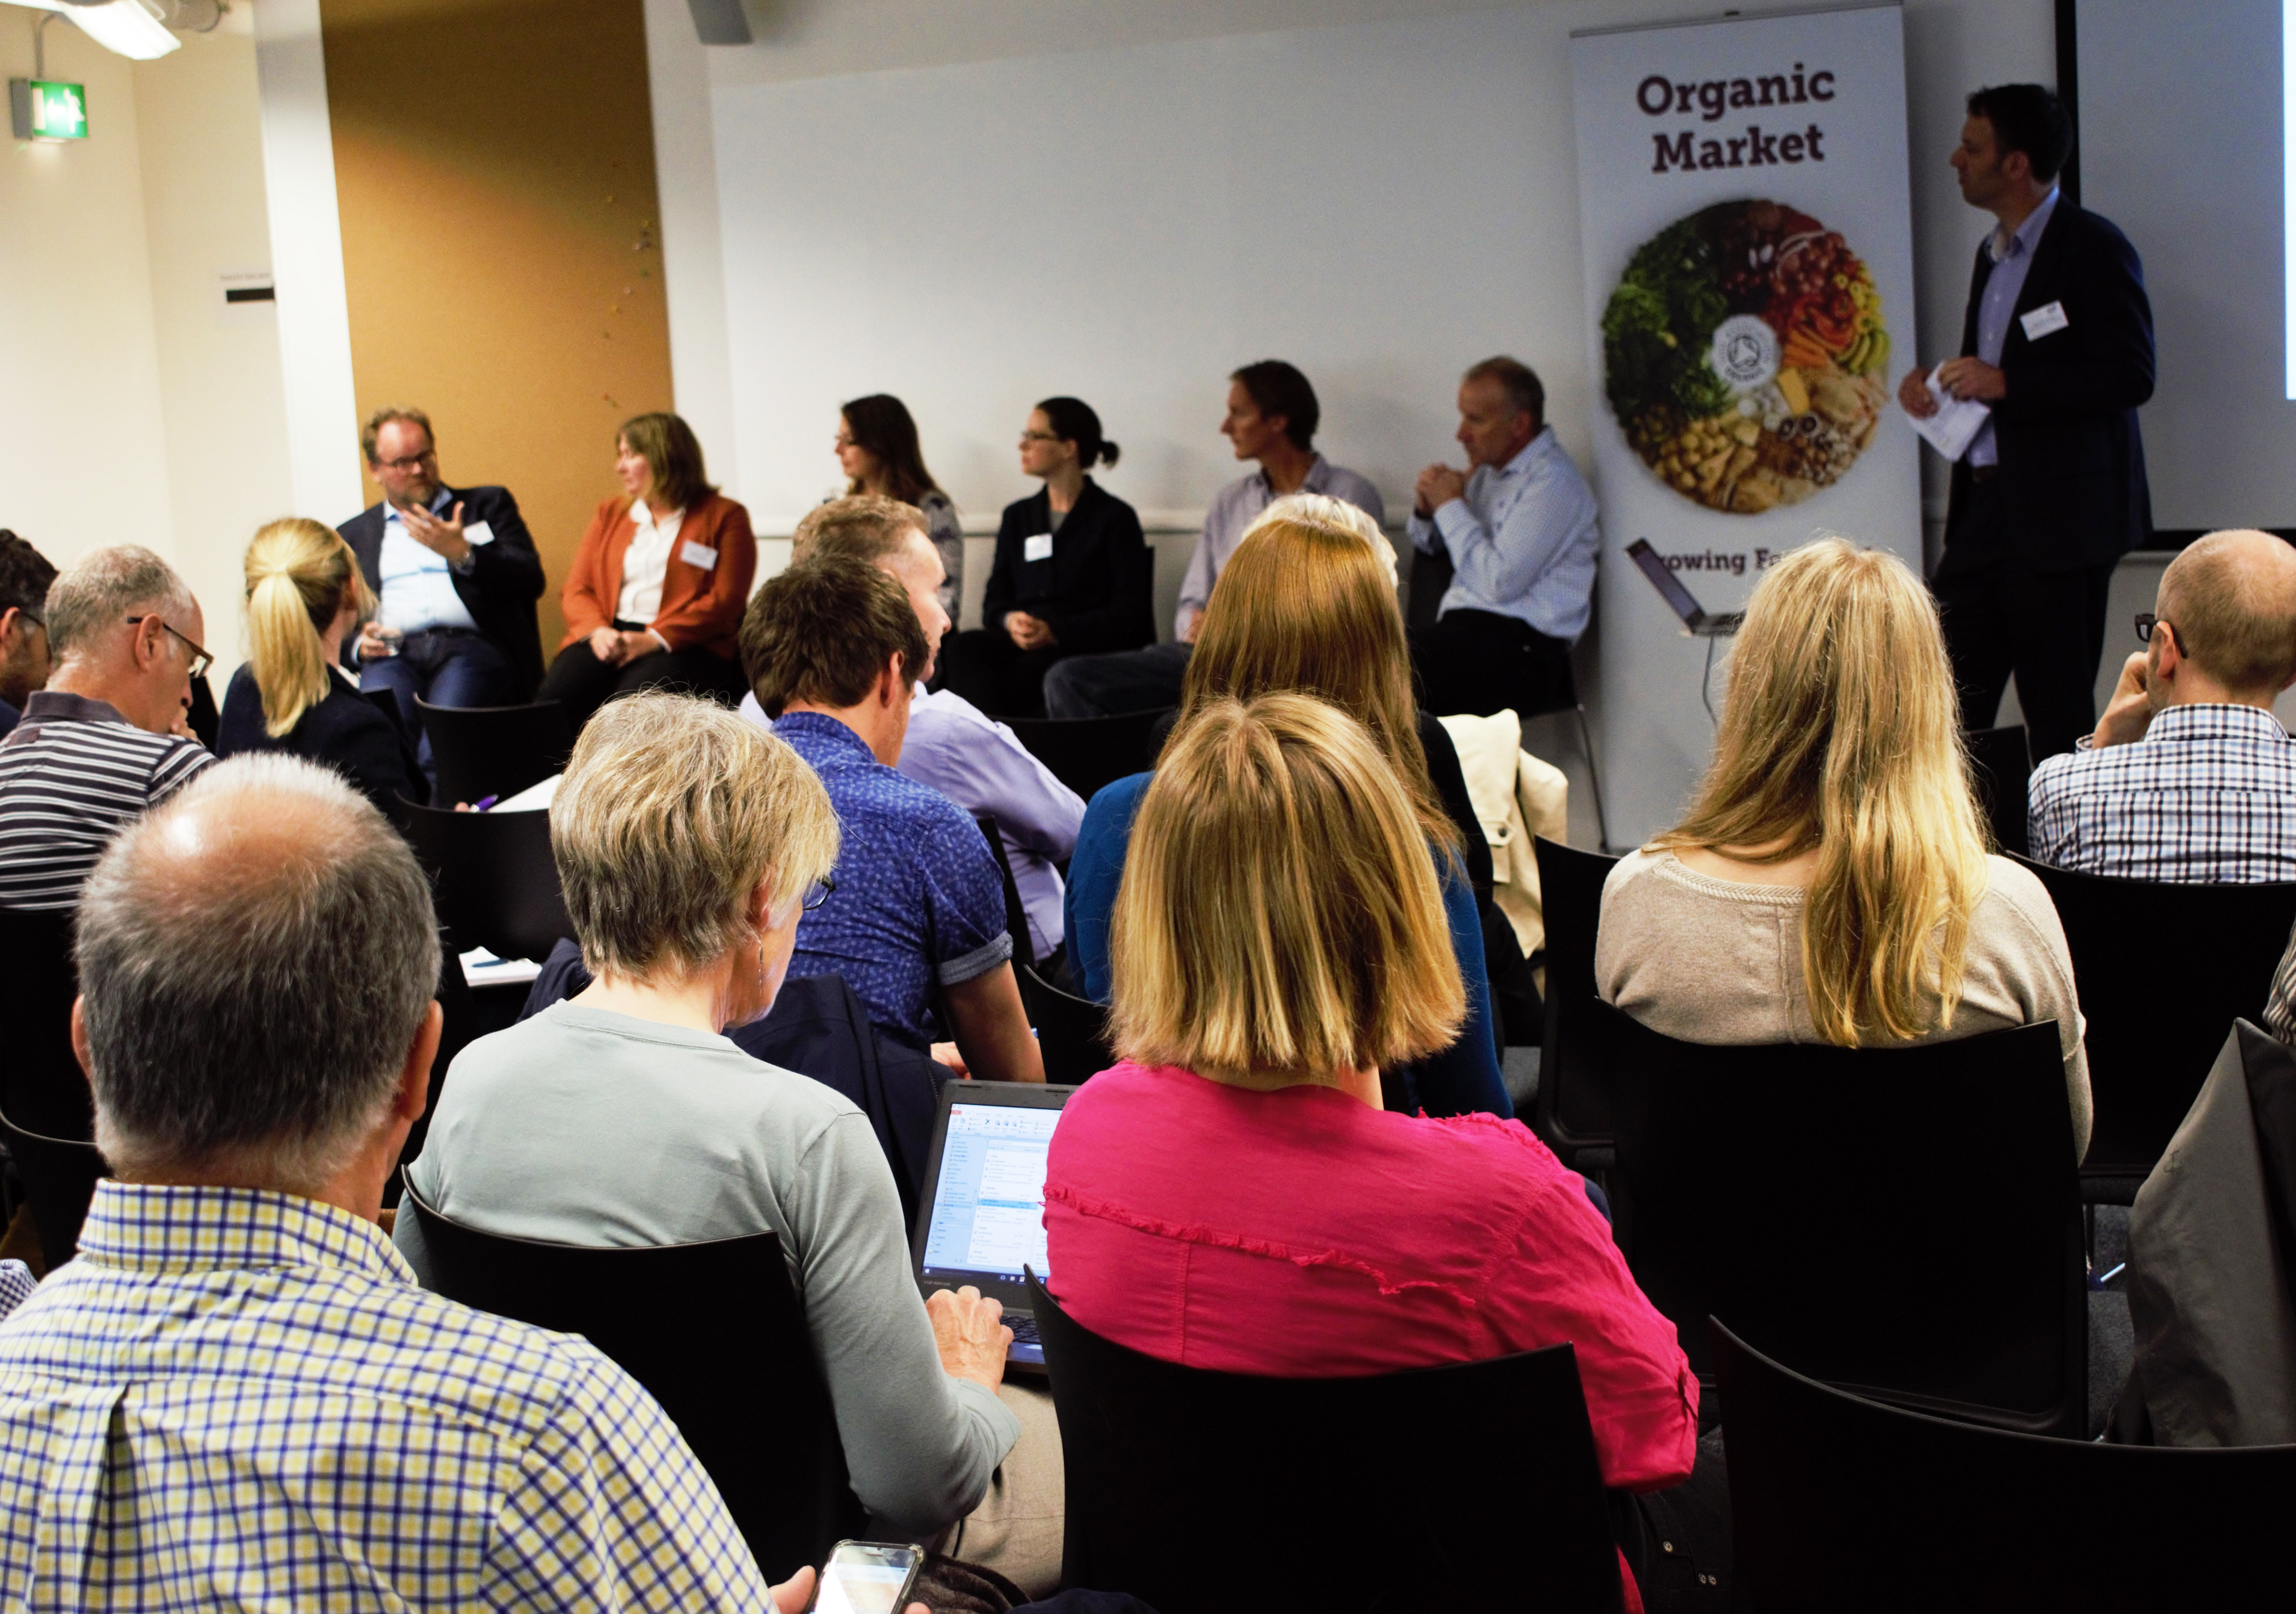 Future proofing the Organic Supply Chain as the market grows